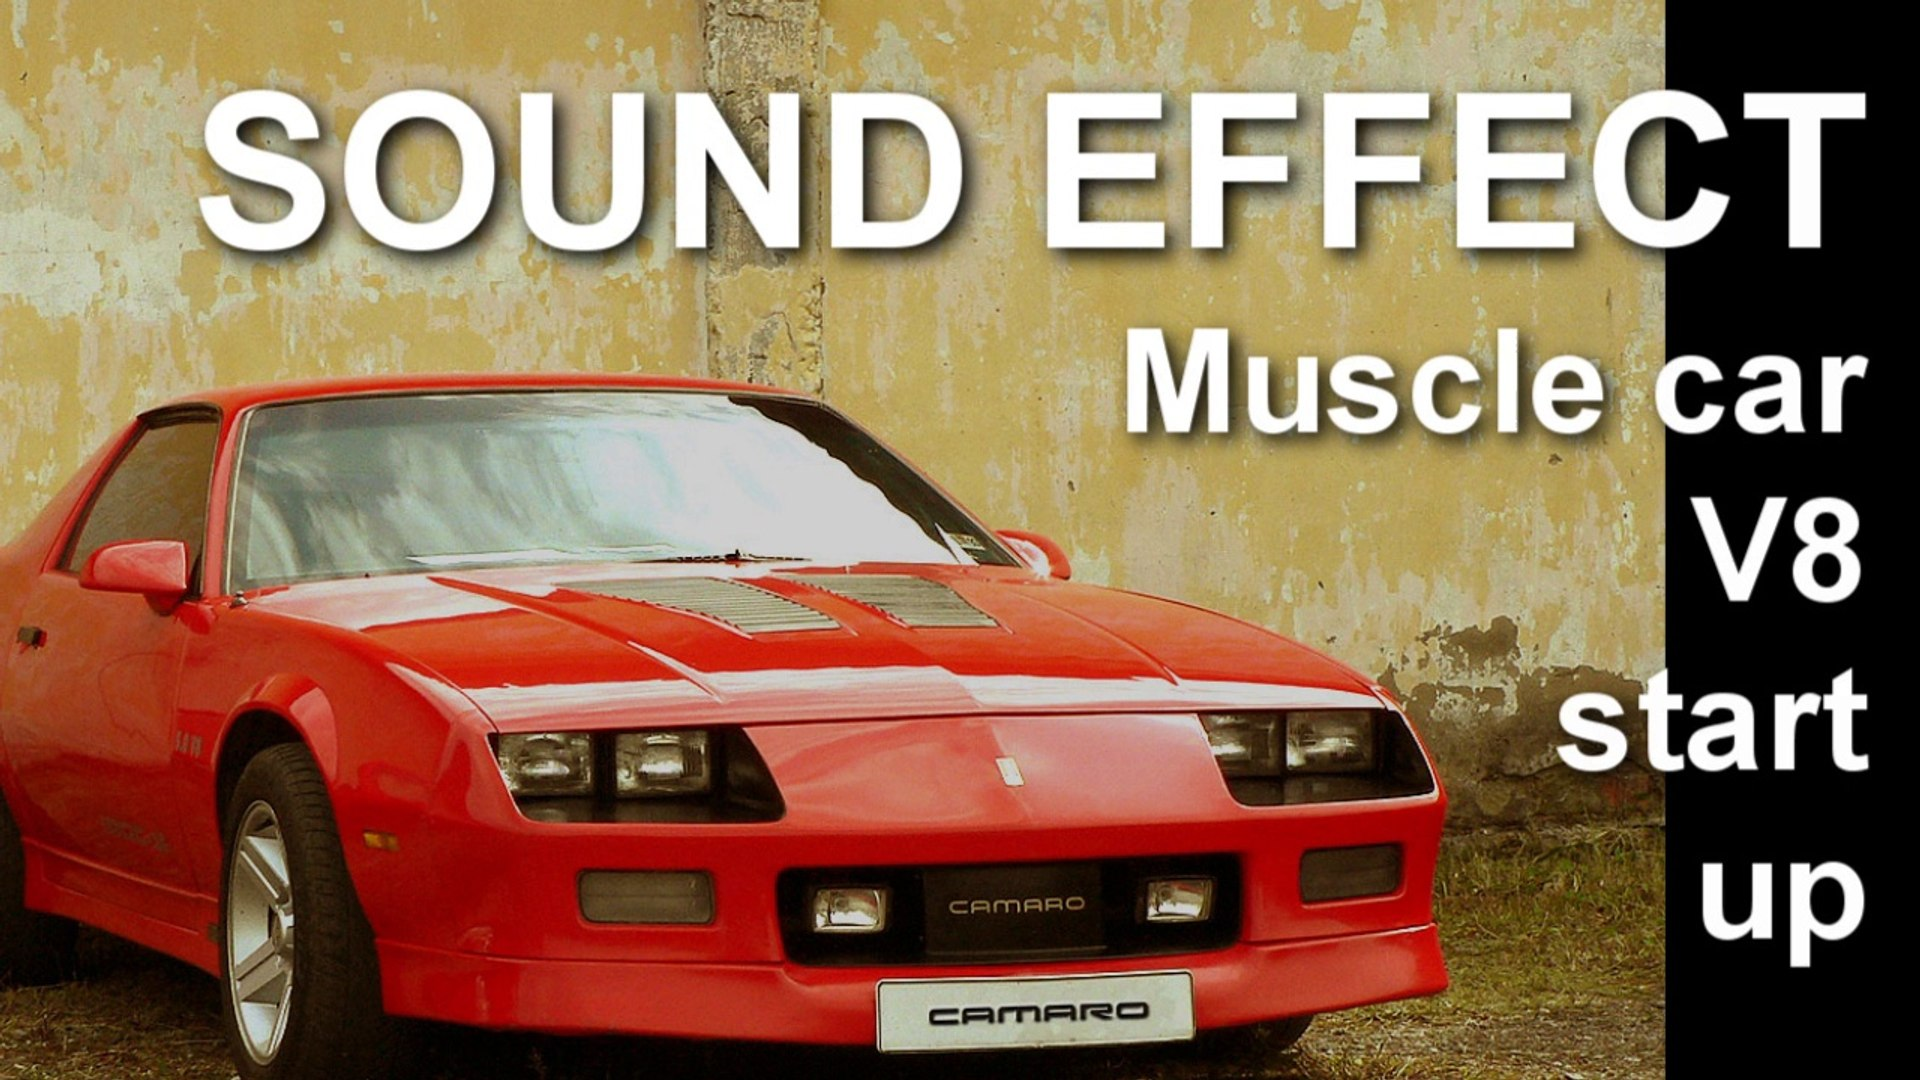 Muscle car V8 start up Drive Off SOUND EFFECT